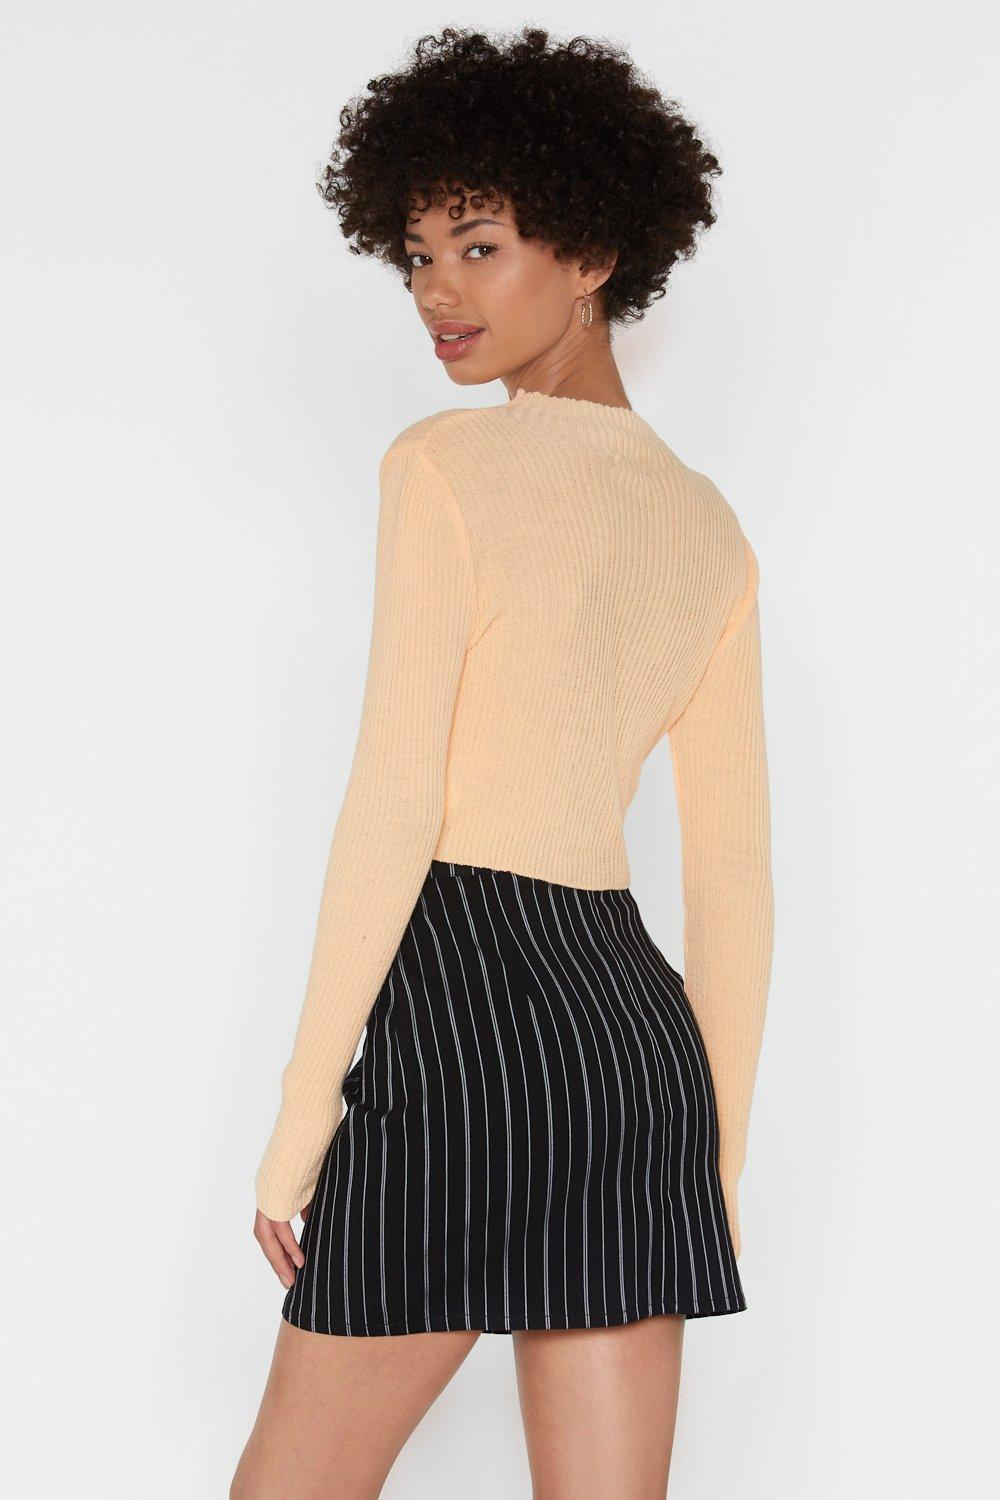 d8eba9bf4b In Your Own Line Pinstripe Mini Skirt | Shop Clothes at Nasty Gal!